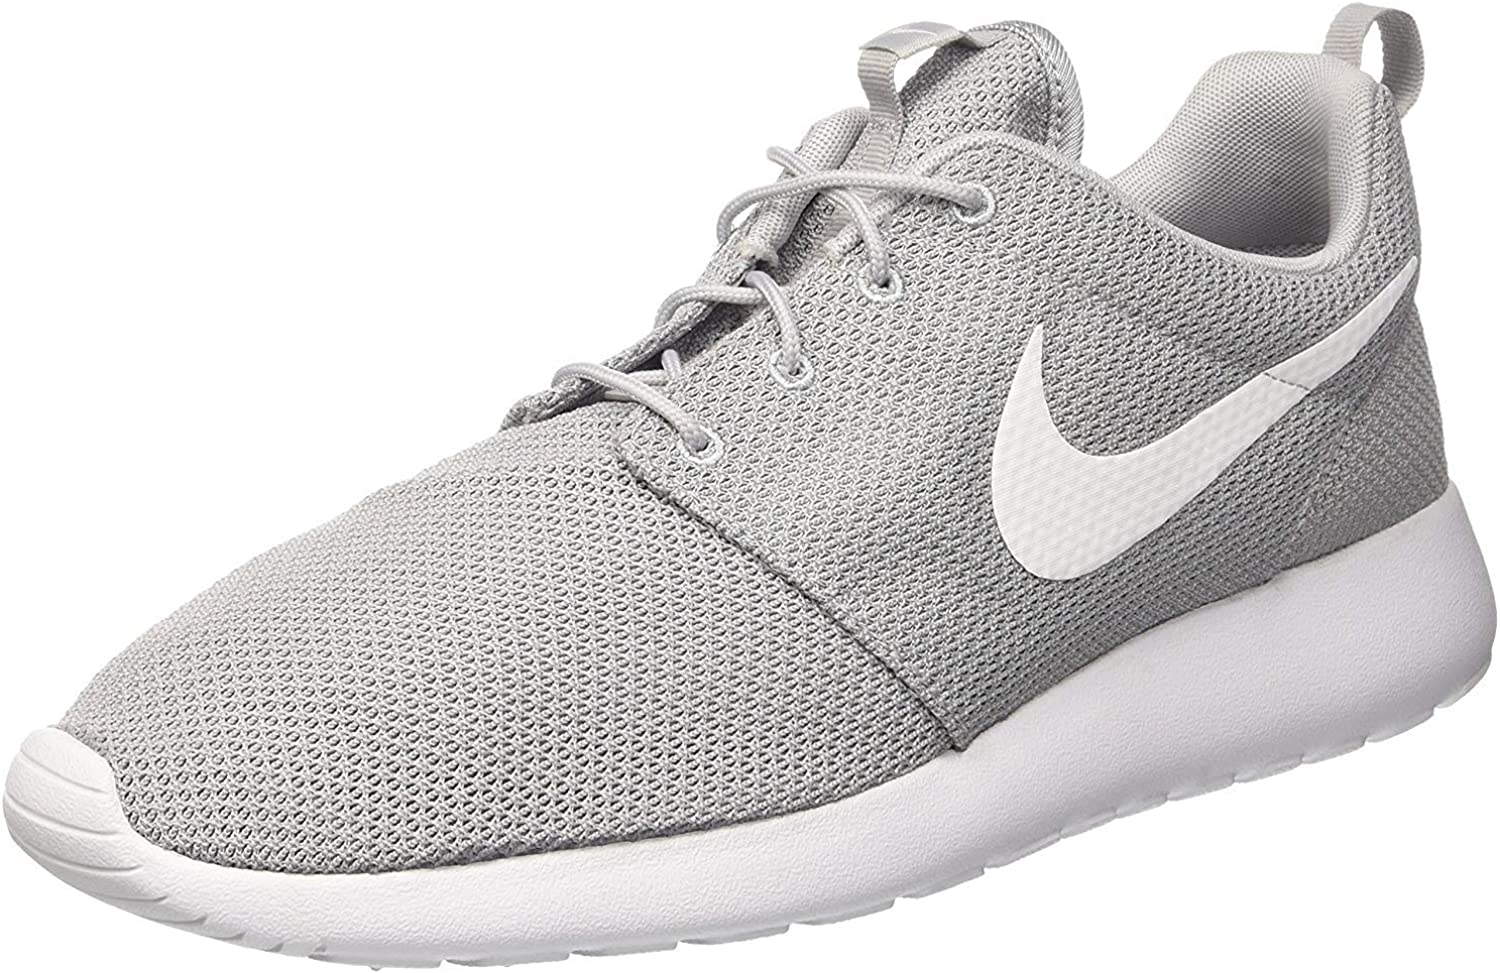 microondas El cielo ley  Amazon.com | Nike Men's Roshe Run | Road Running